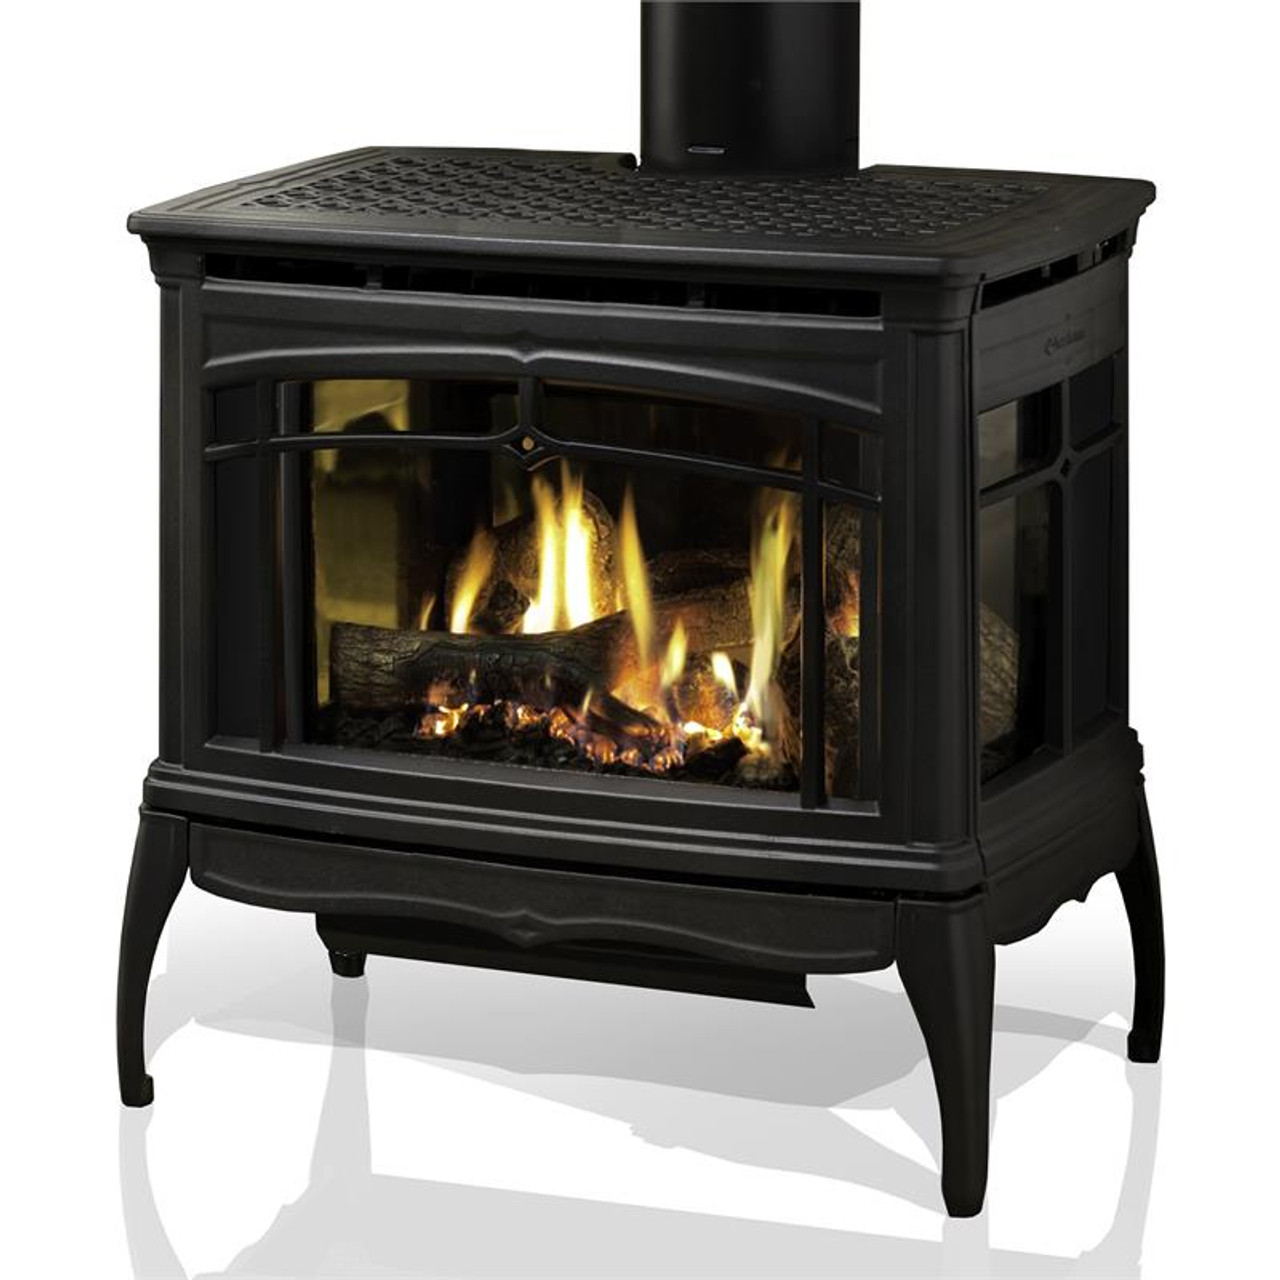 HearthStone Waitsfield DX Gas Stove in Matte Black